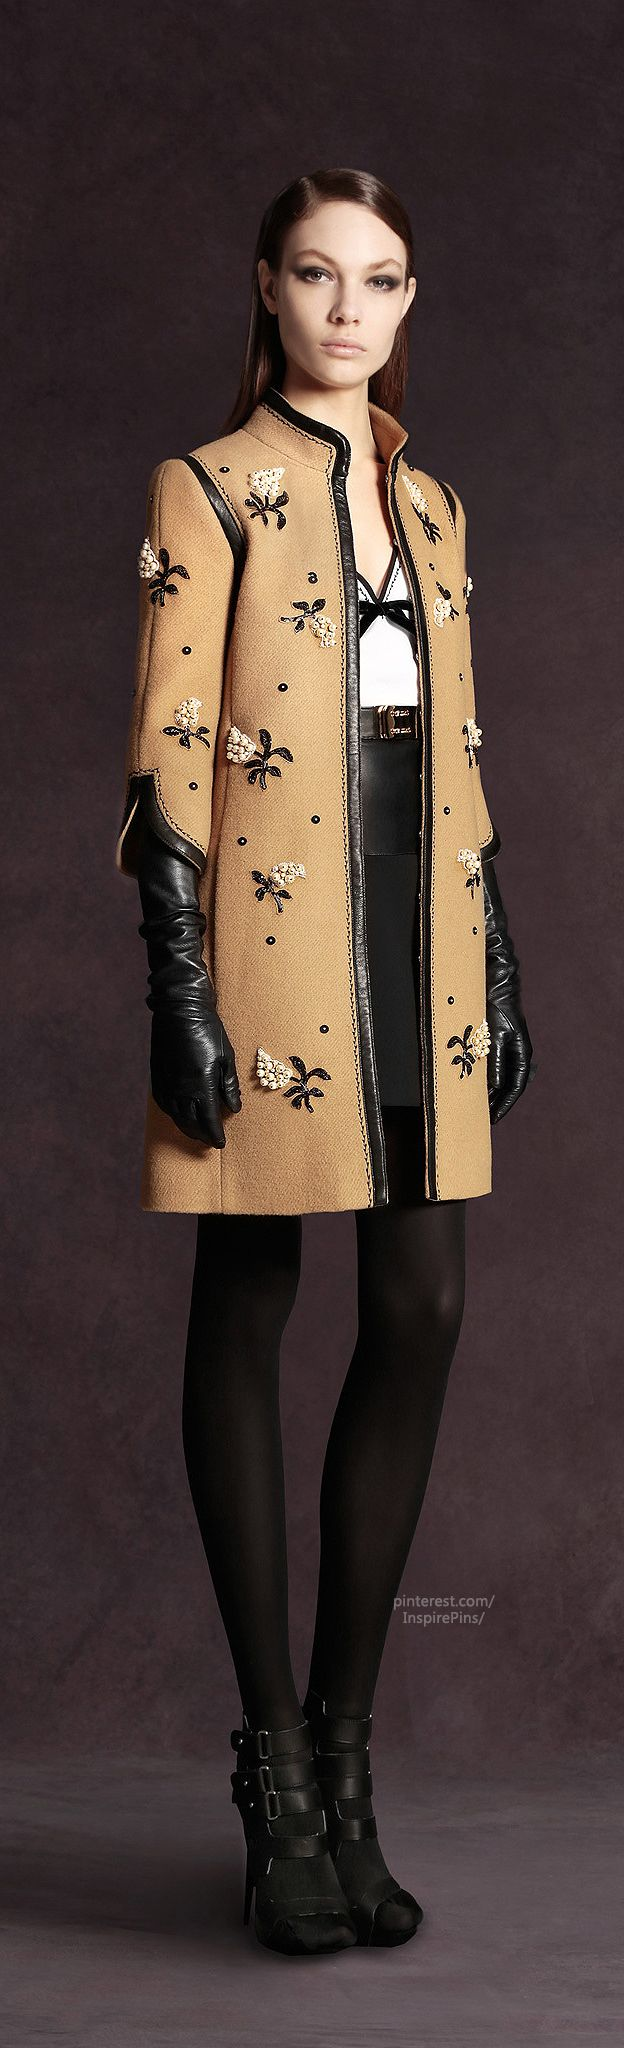 Pre-Fall 2013 Andrew Gn                                                                                                                                                      More